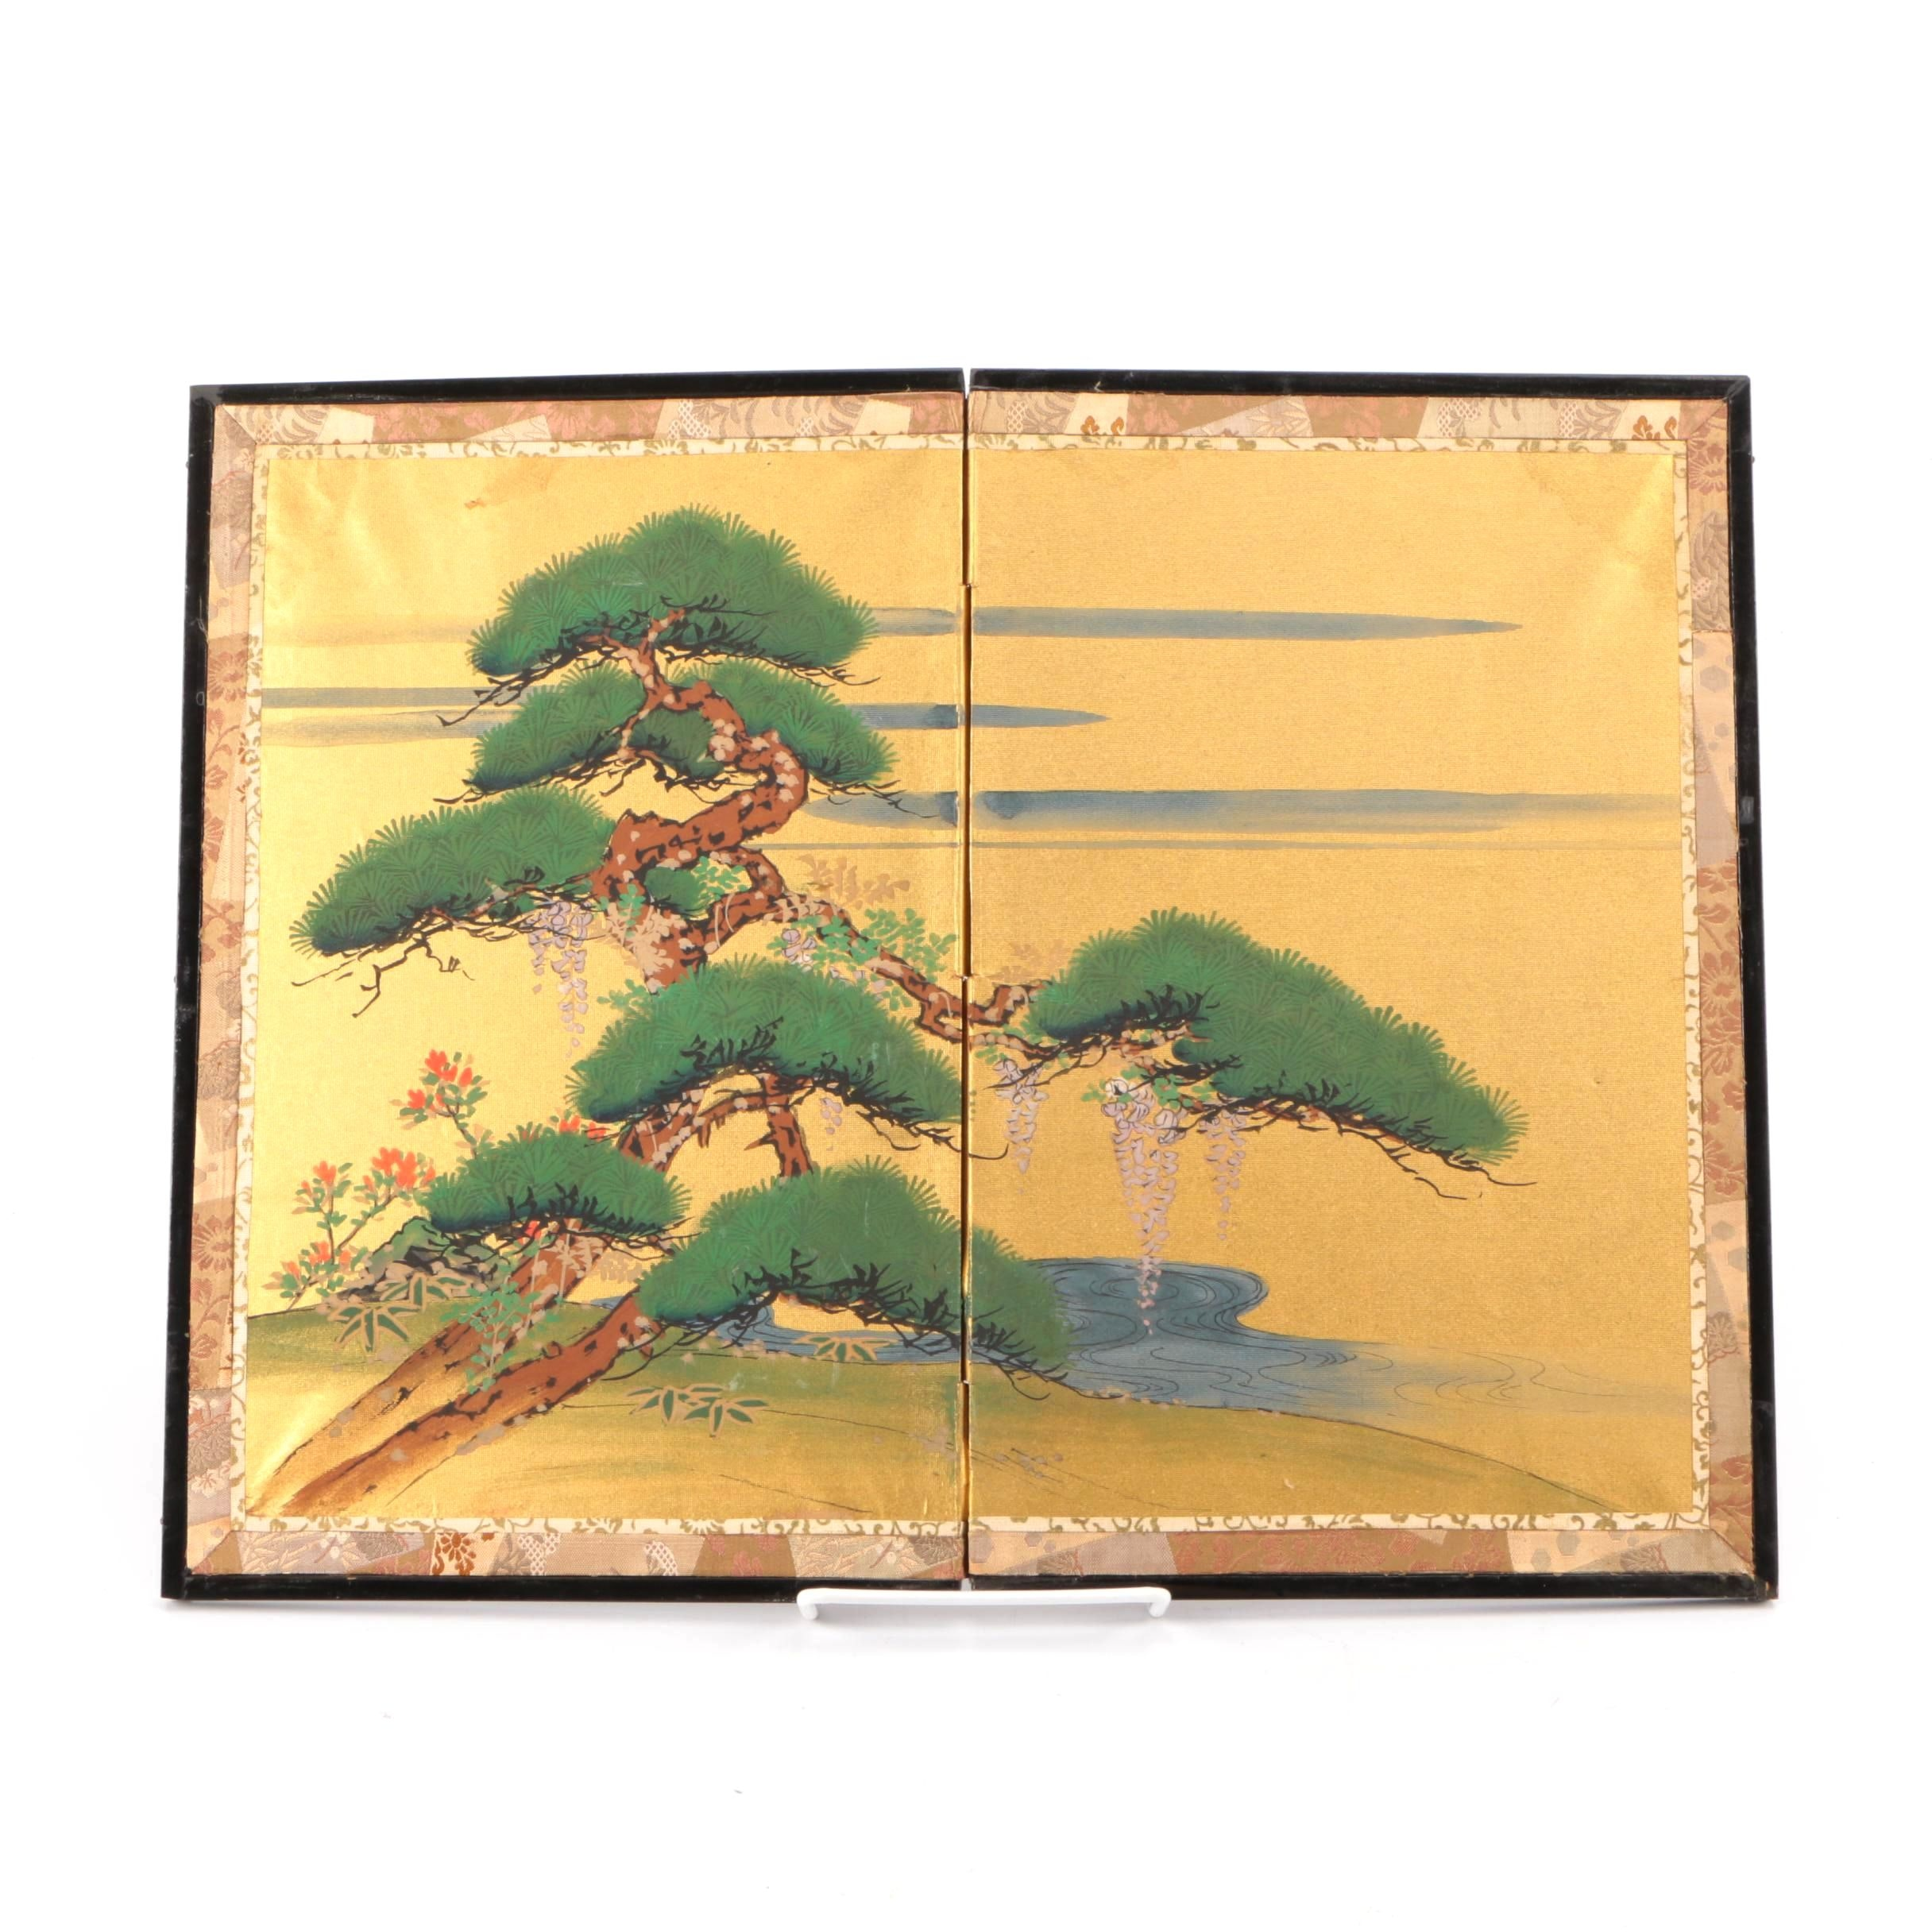 East Asian Inspired Tabletop Folding Screen with Painted Landscape on Silk